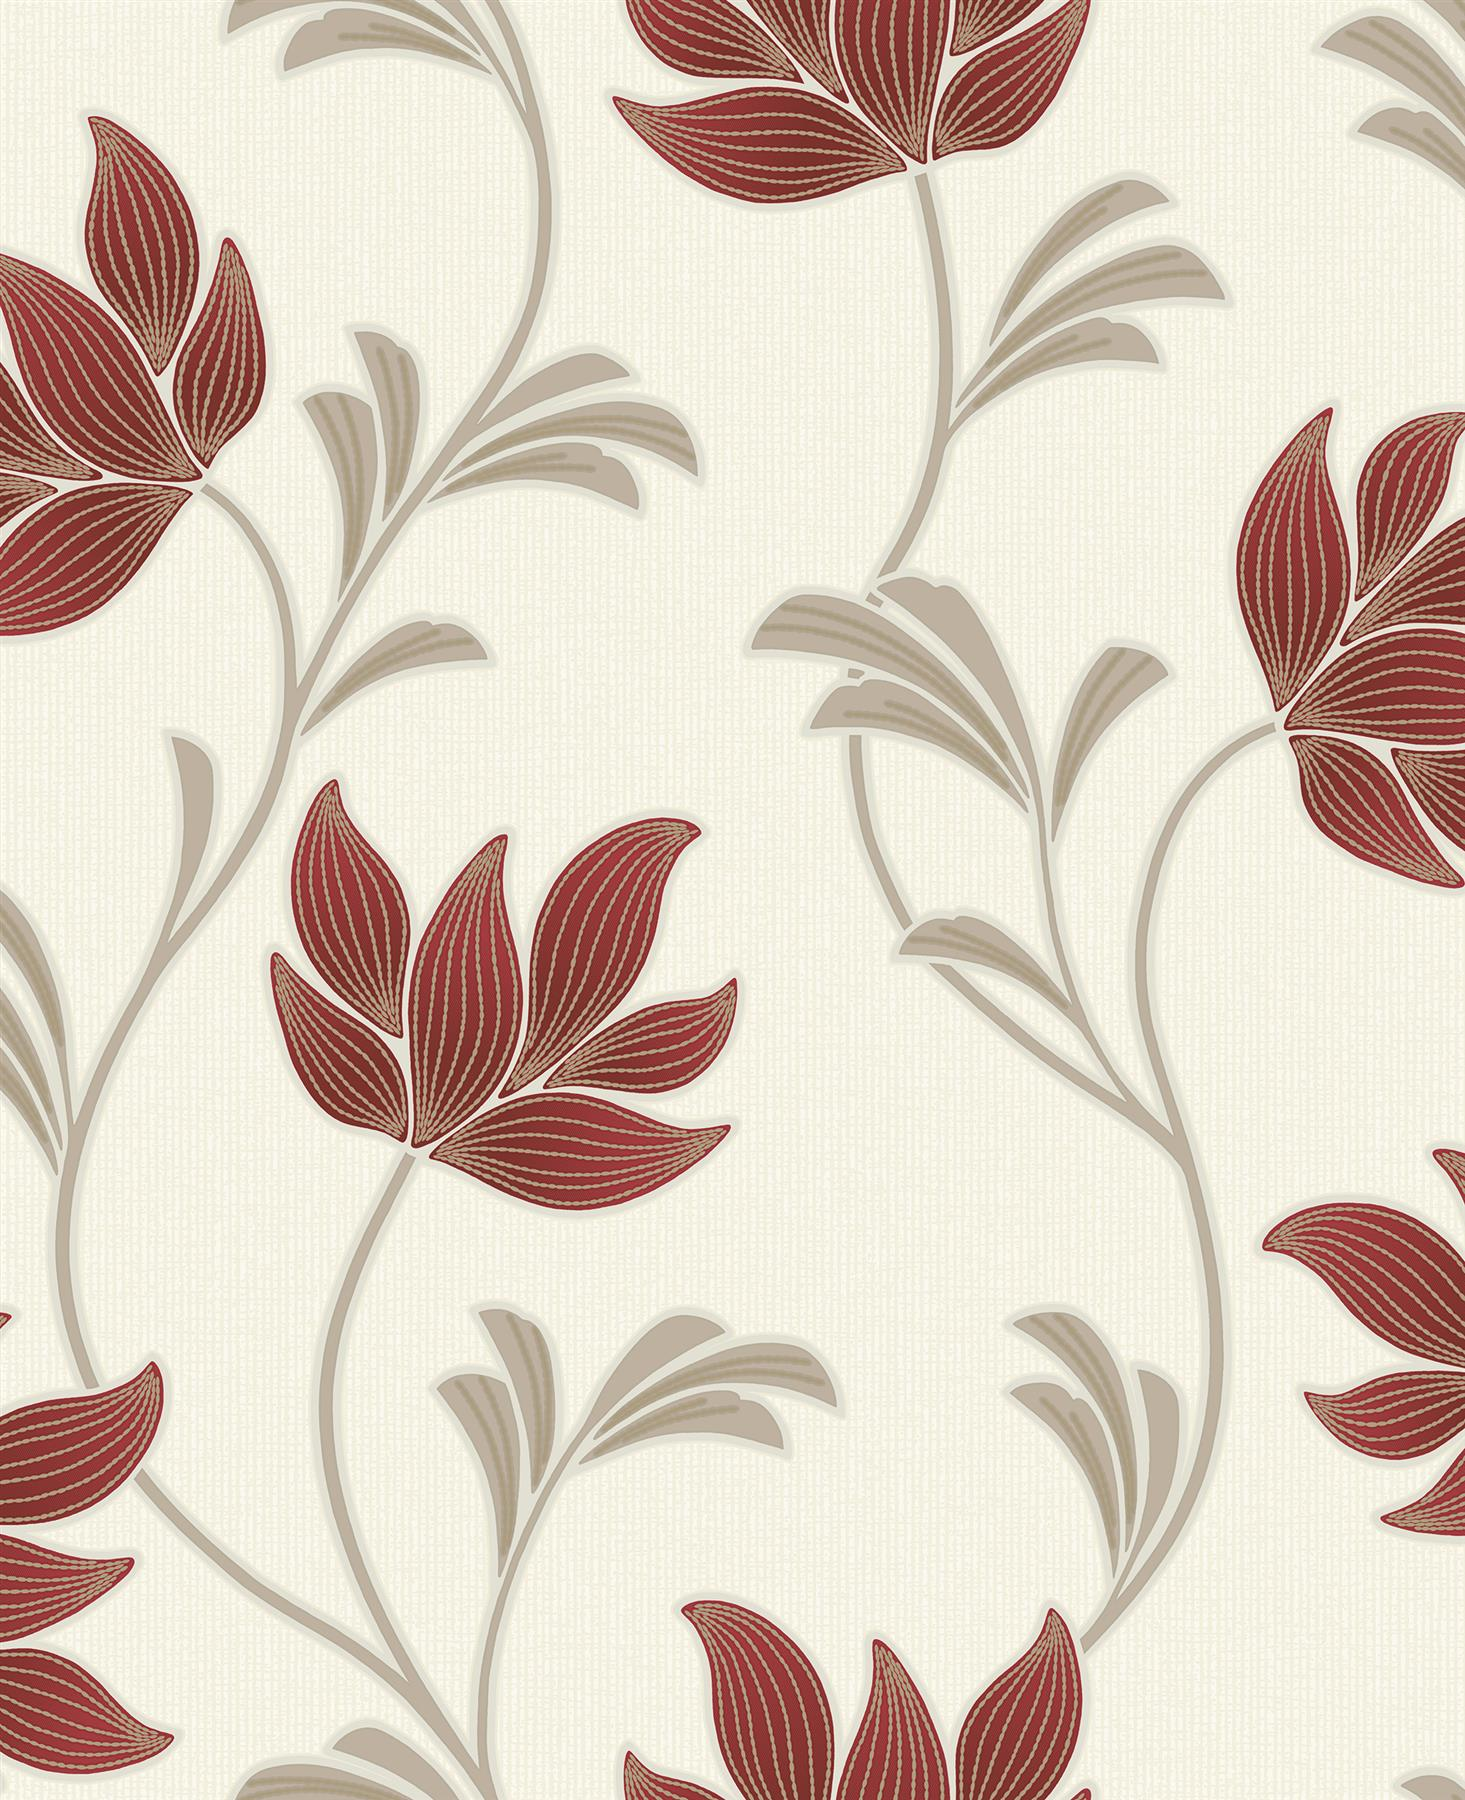 Floral Glitter Textured Wallpaper Red Gold Cream Beige Embossed